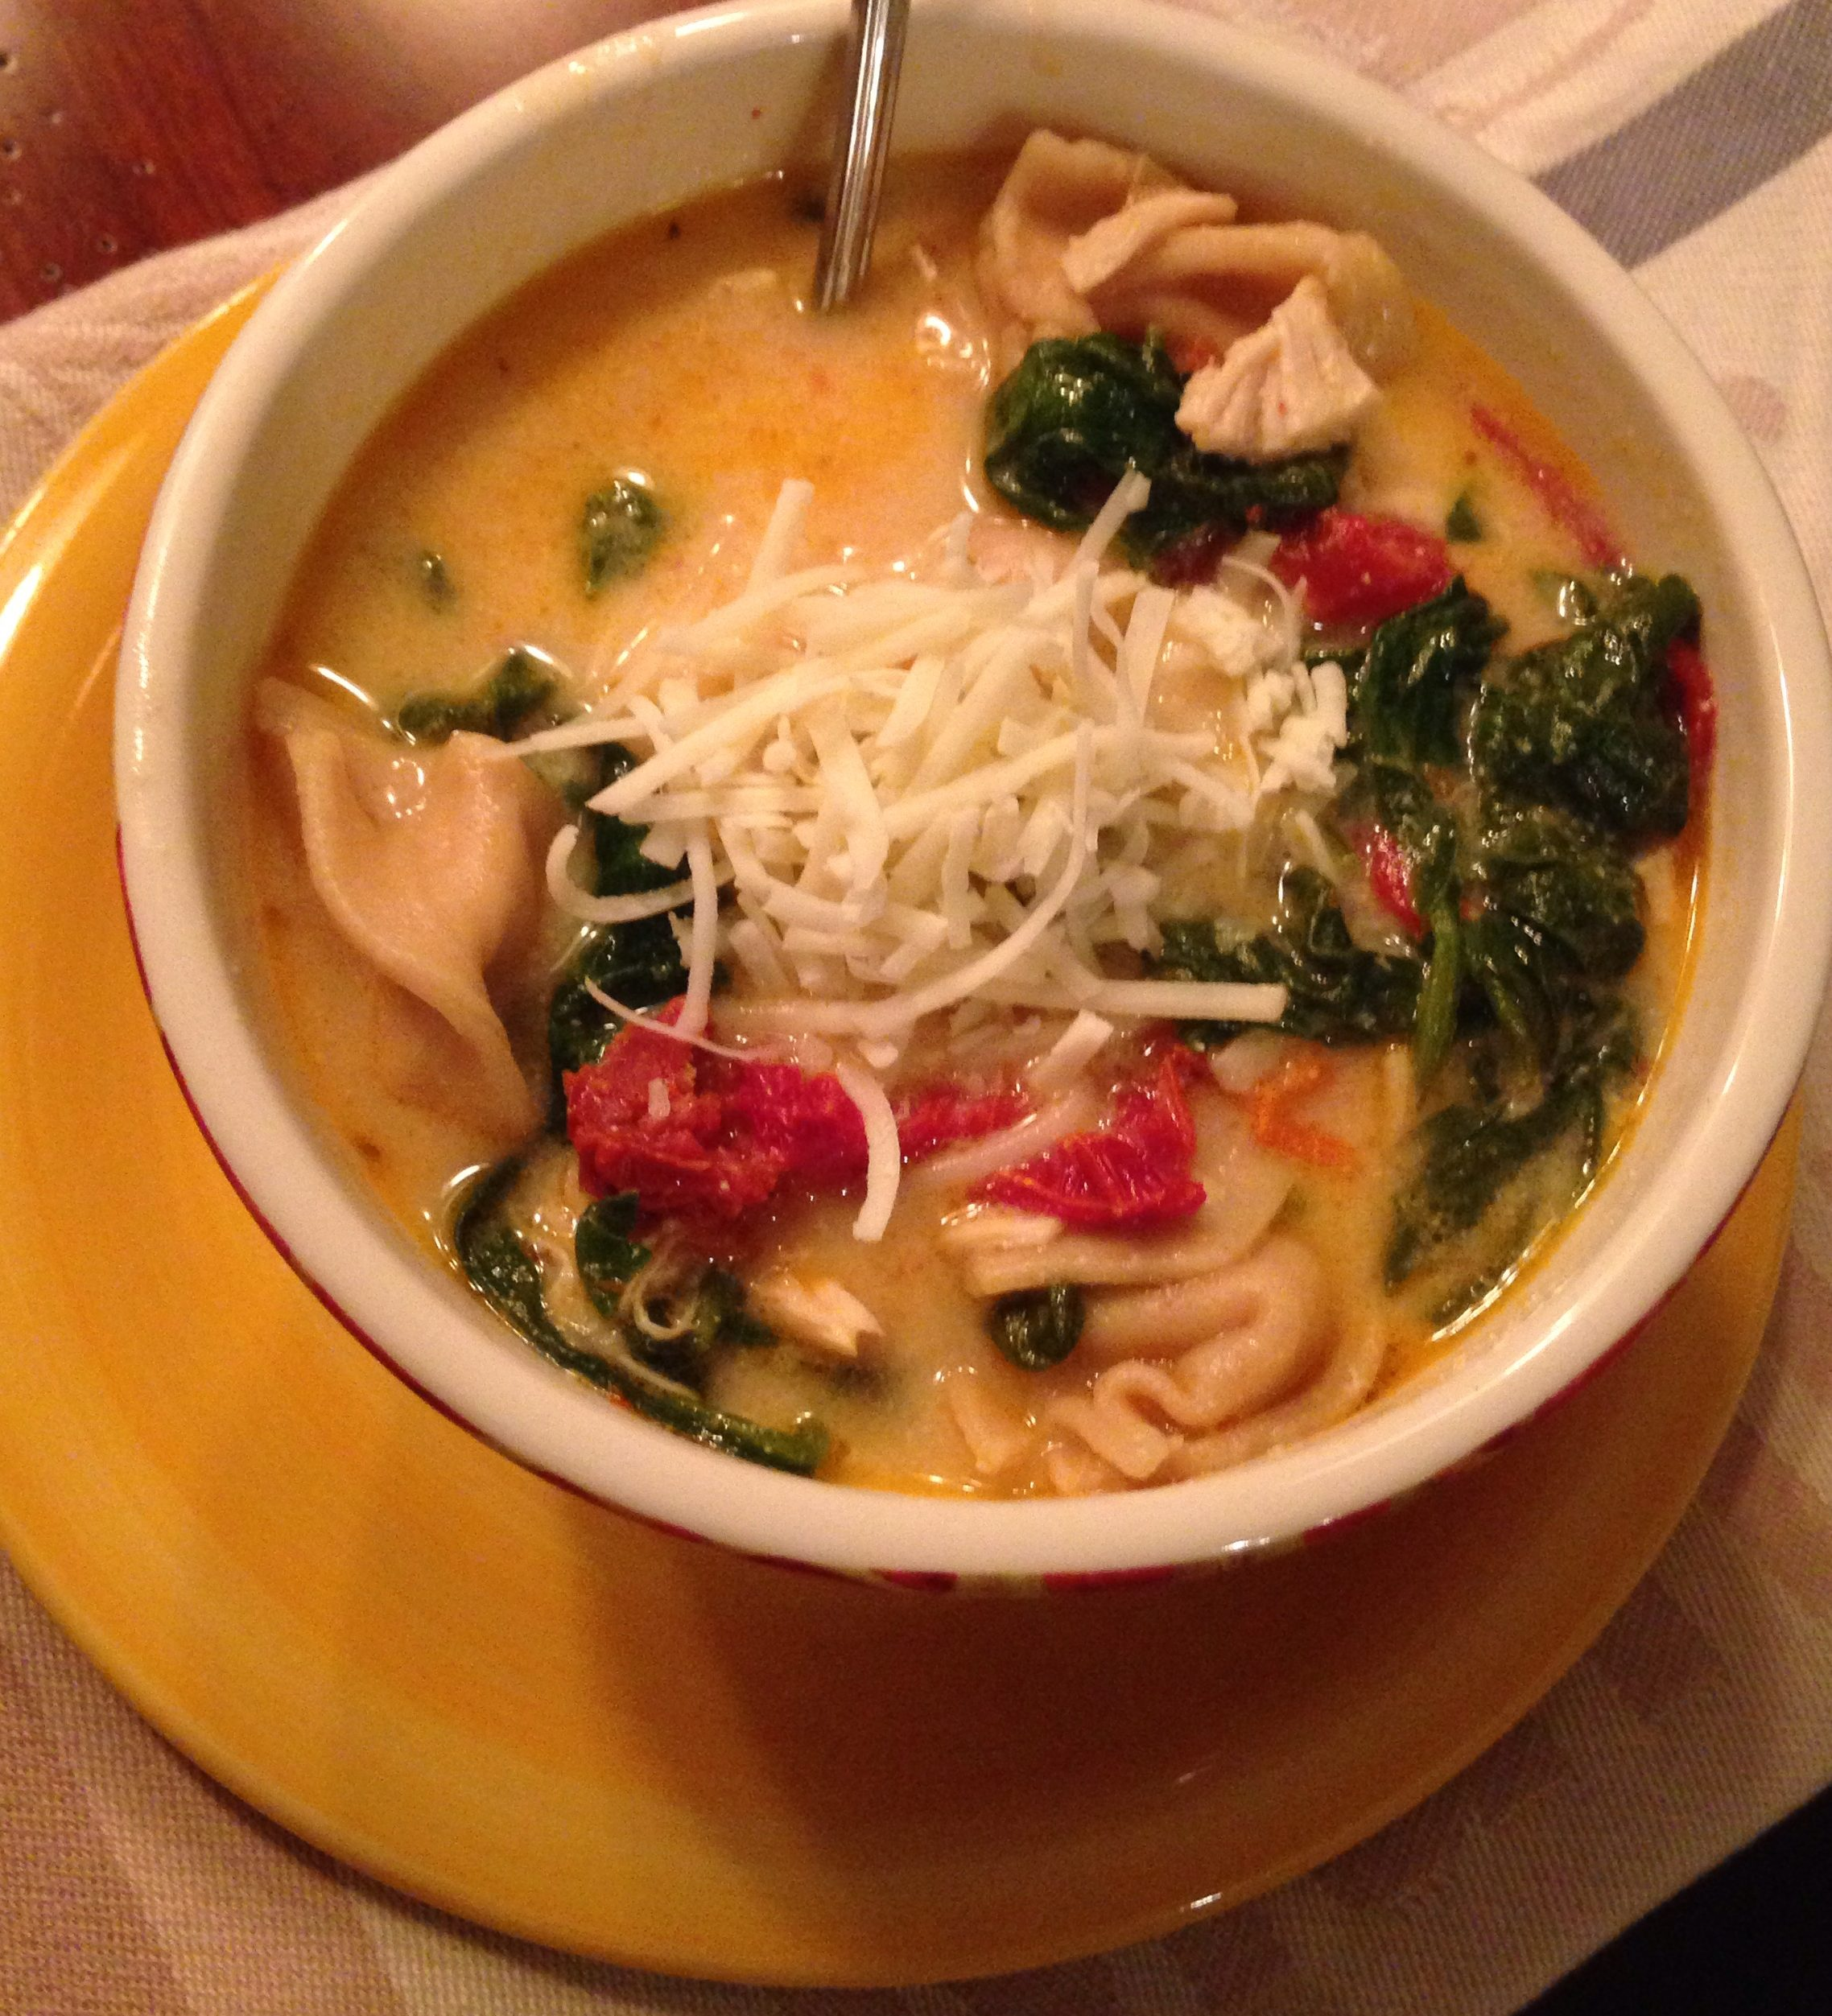 Delicious Bowl of Hearty Chicken Tortellini Florentine Soup